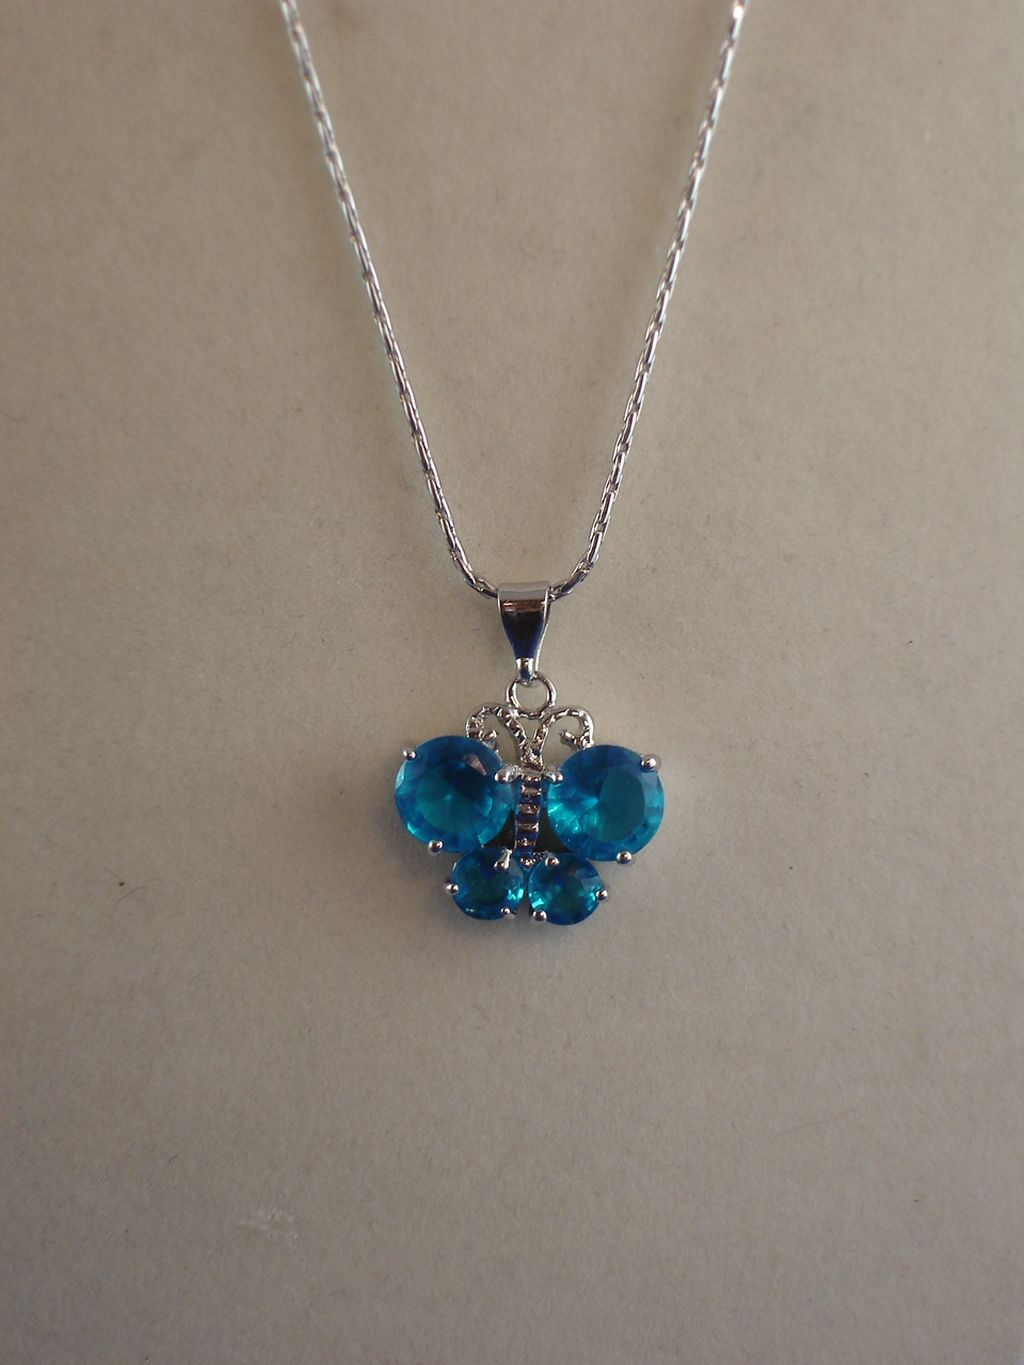 "Blue Cubic Zirconia Butterfly NeckLace, CZ Crystals, Sterling Silver Plated 16"" Chain, Anti-allergic Jewelry"